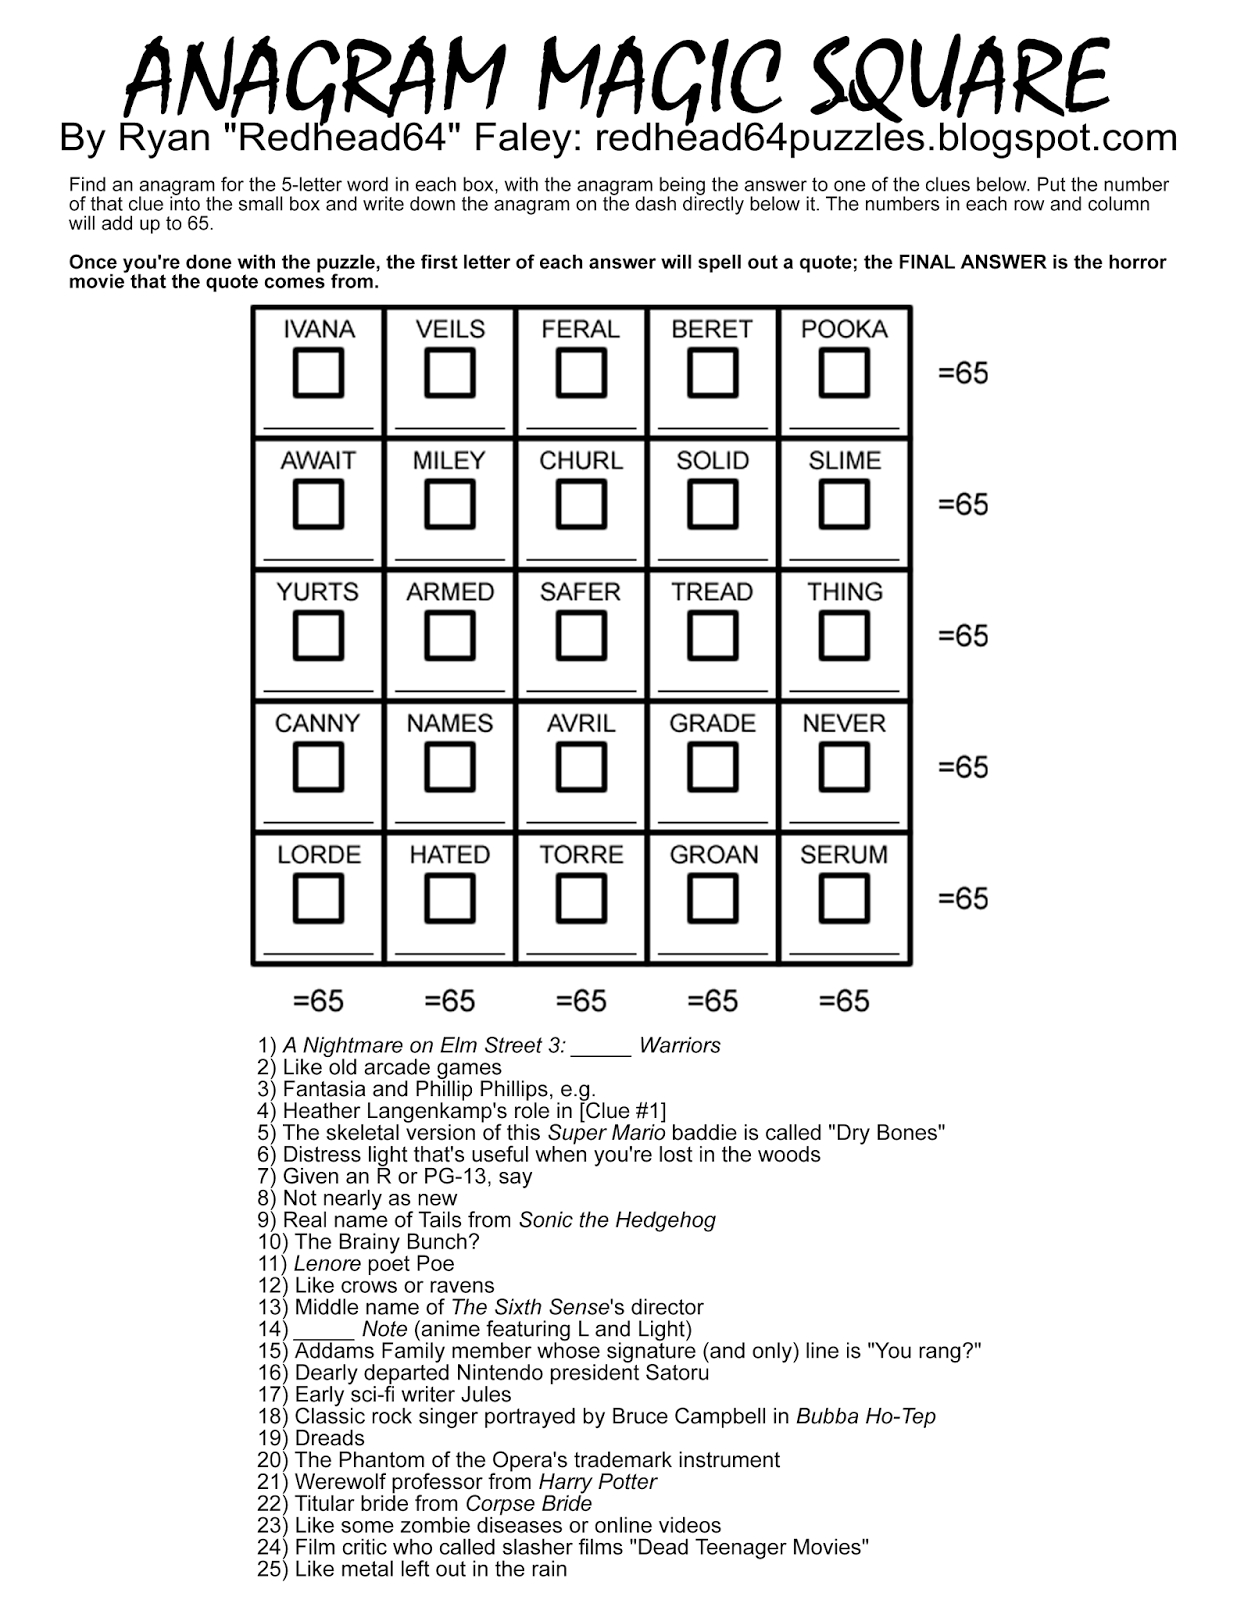 Redhead64's Obscure Puzzle Blog!: Halloween Month! Puzzle #45 - Free Printable Anagram Magic Square Puzzles